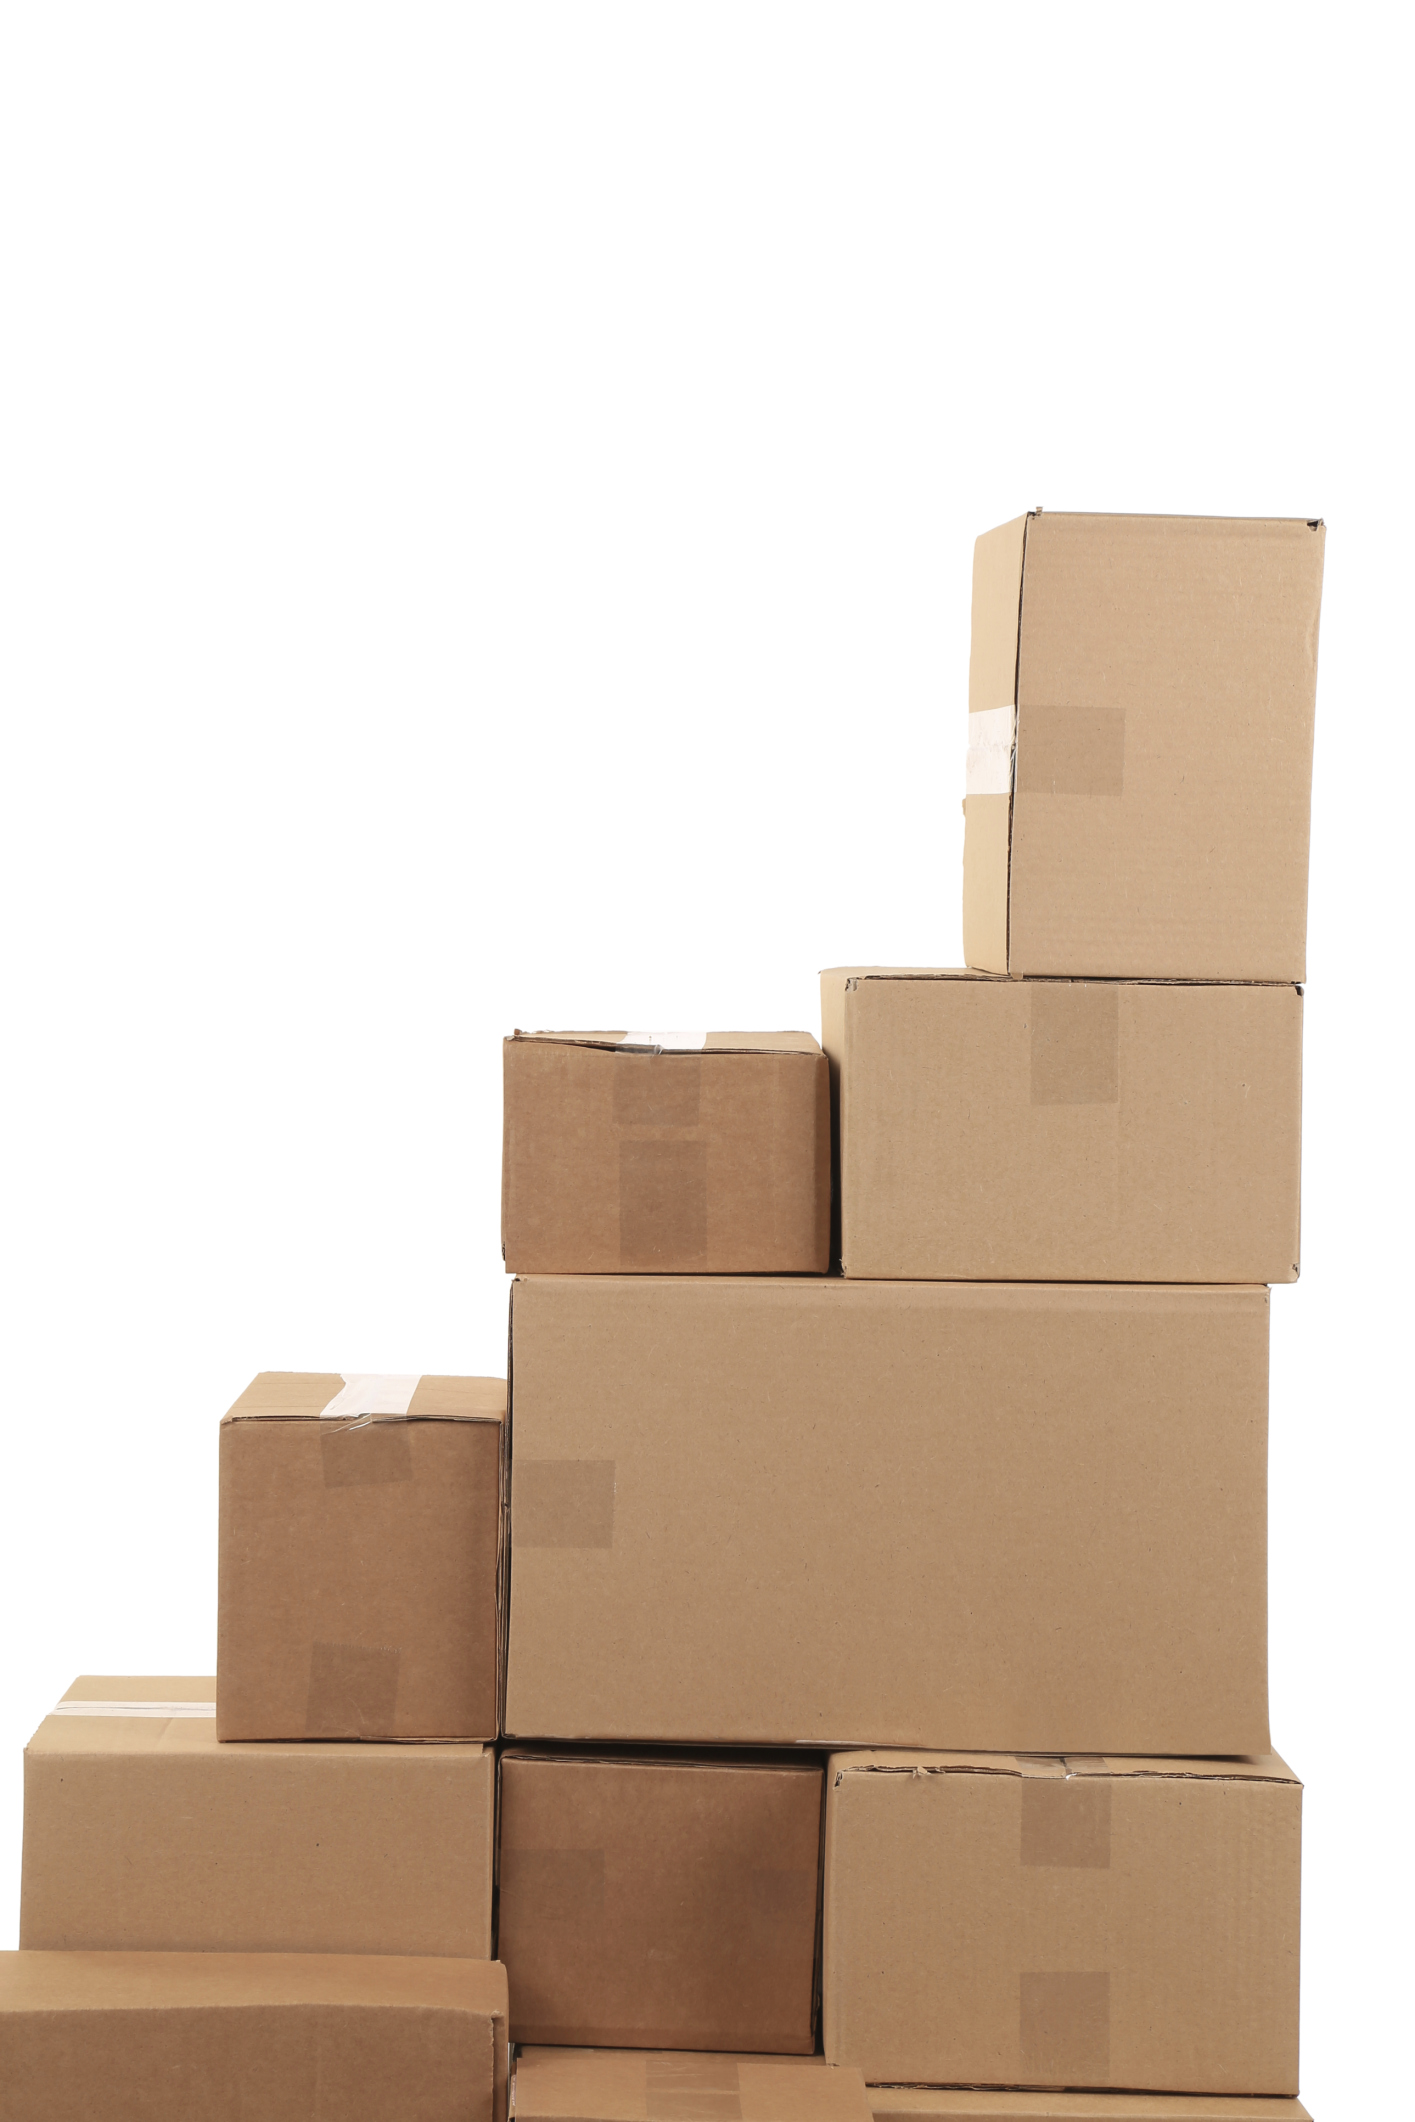 How to Address a Package | Bizfluent